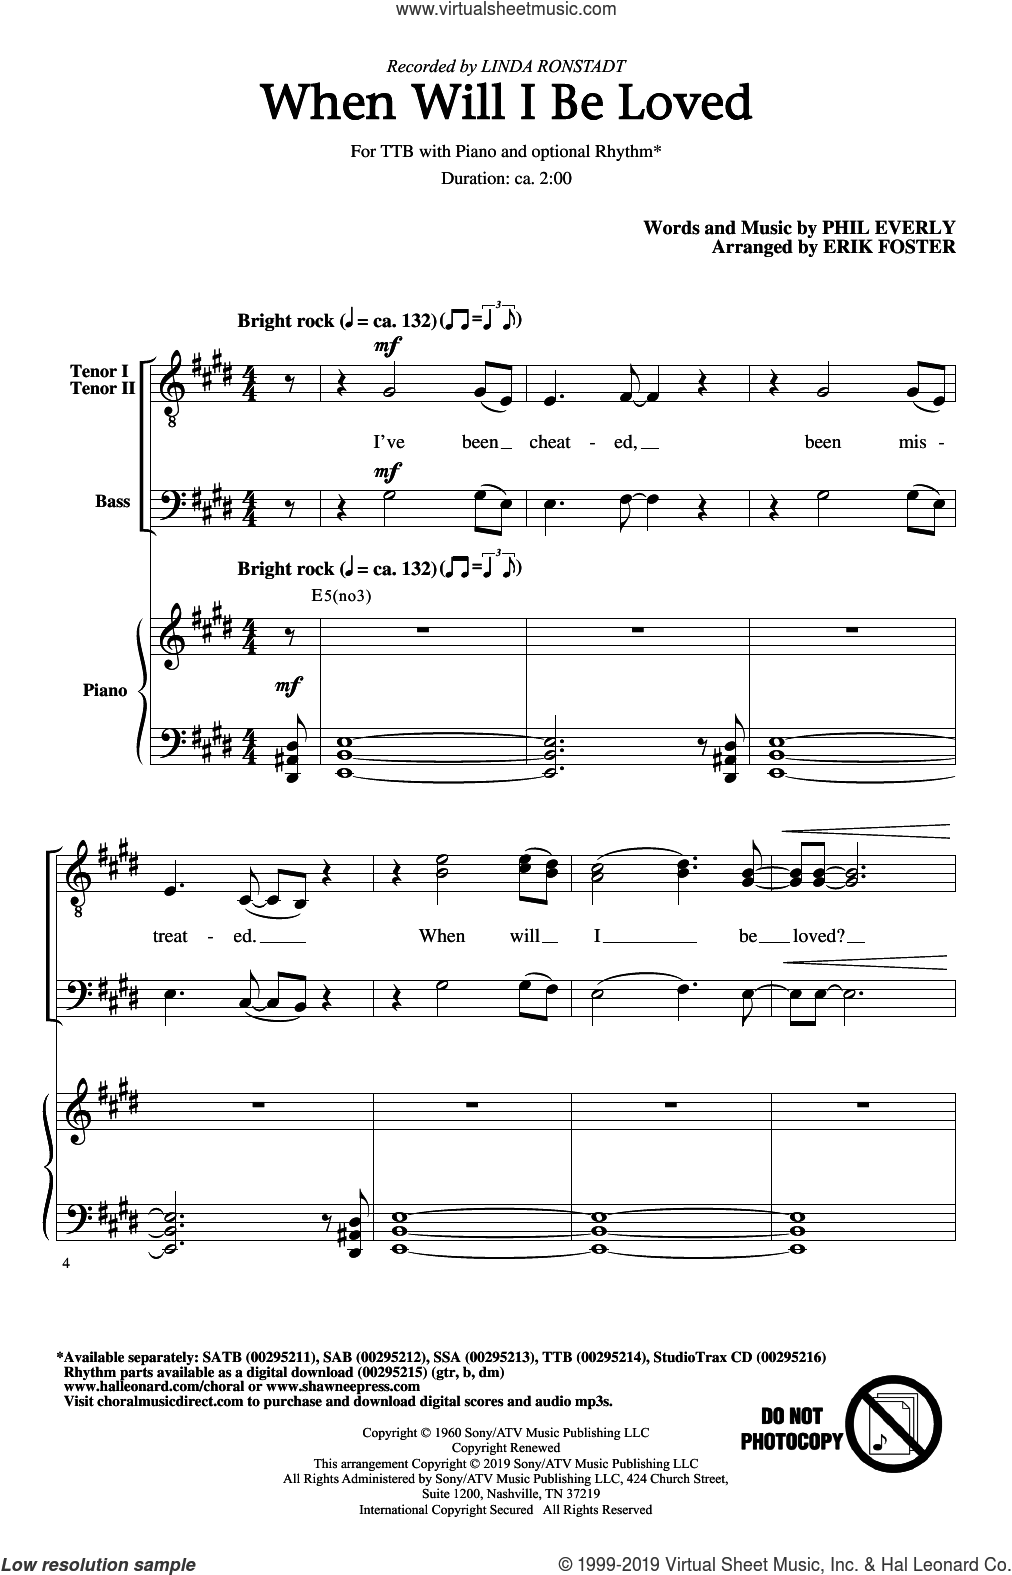 When Will I Be Loved (arr. Erik Foster) sheet music for choir (TTBB: tenor, bass) by Linda Ronstadt, Erik Foster and Phil Everly, intermediate skill level